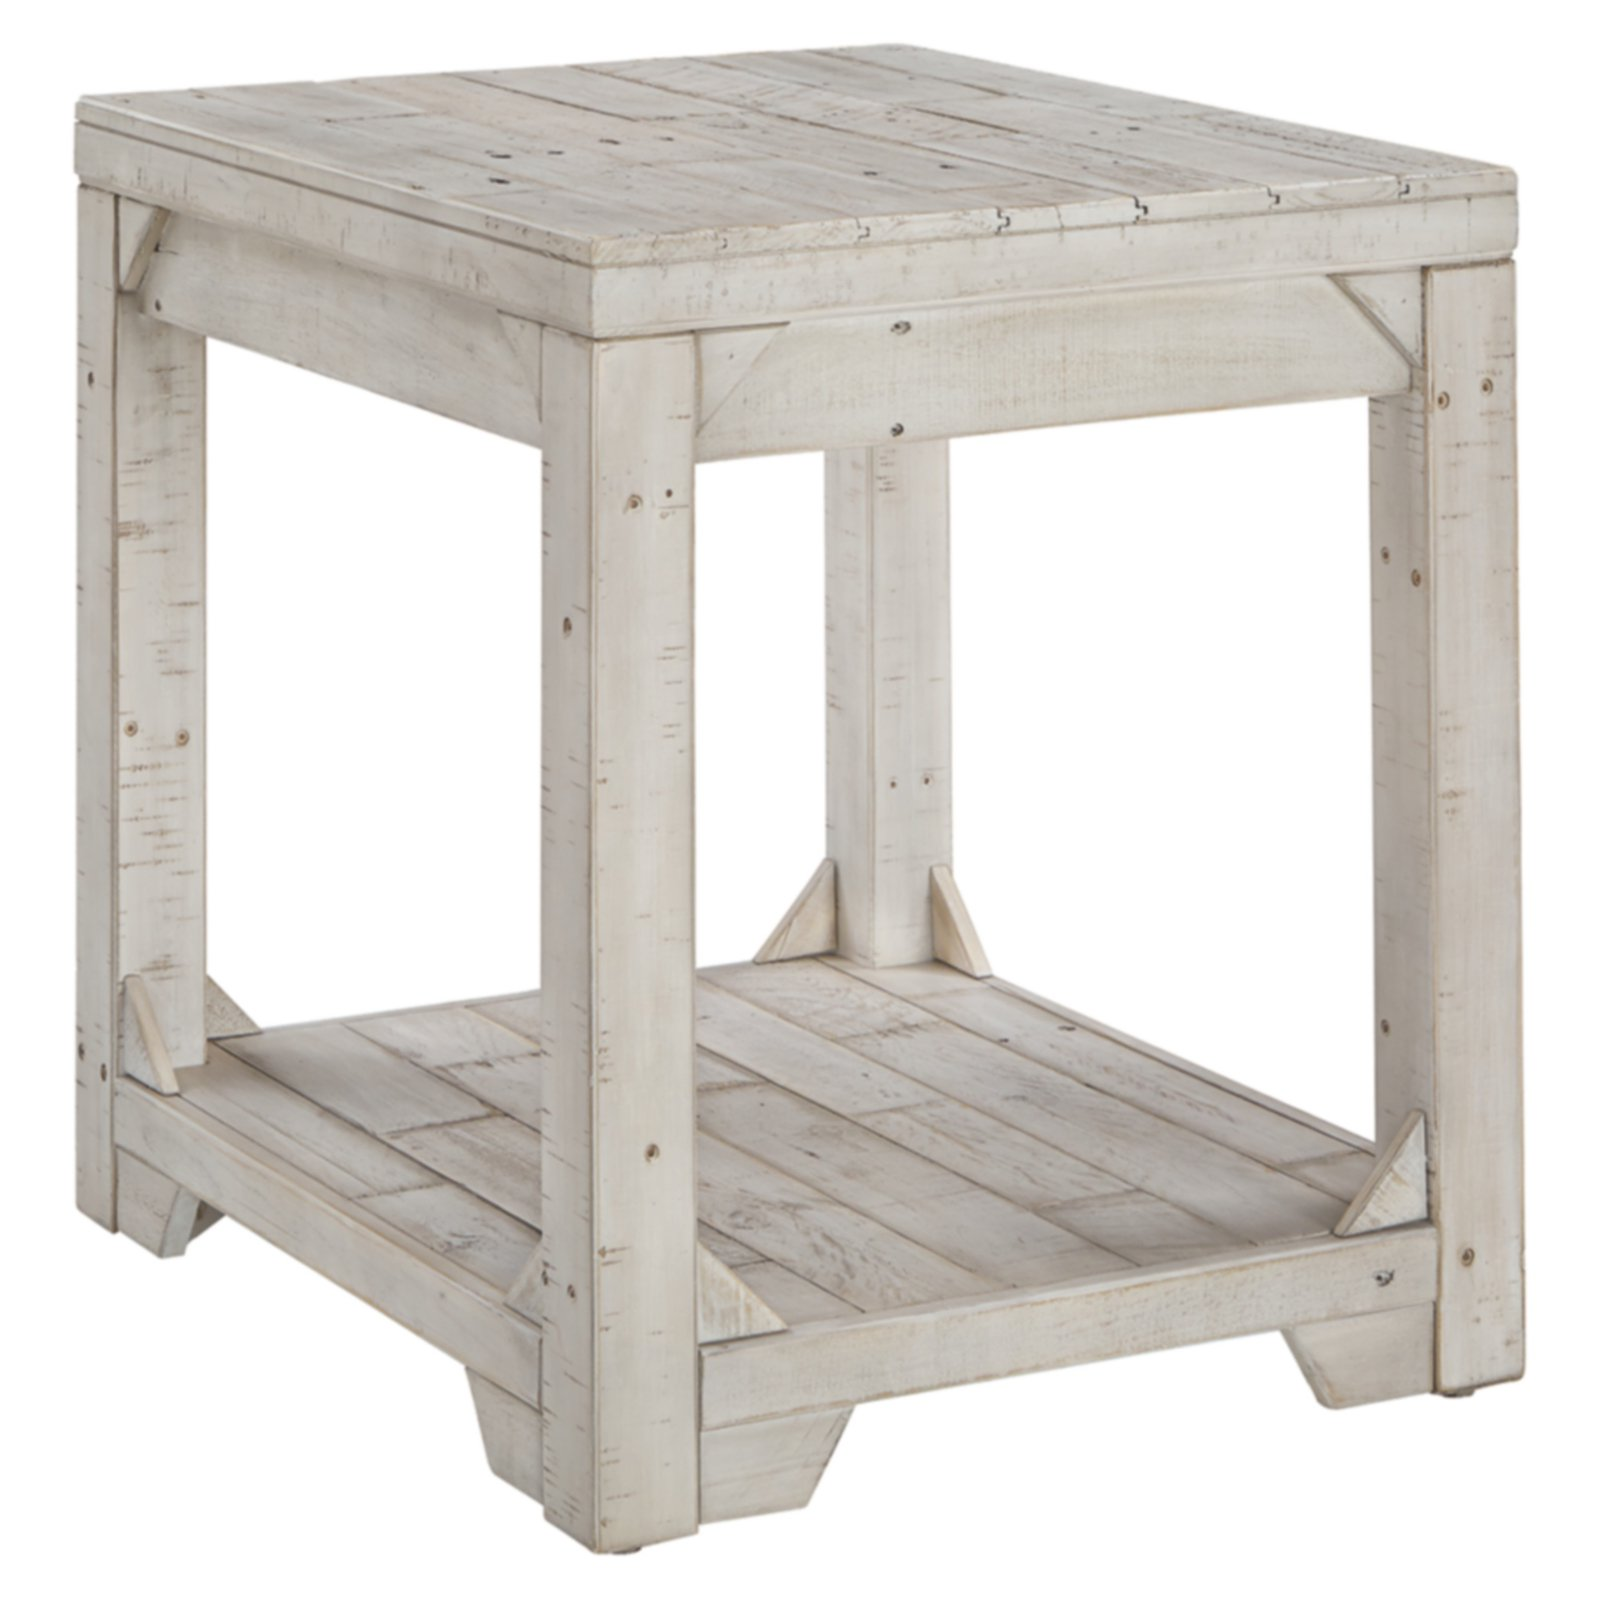 Signature Design by Ashley Fregine Rectangular End Table